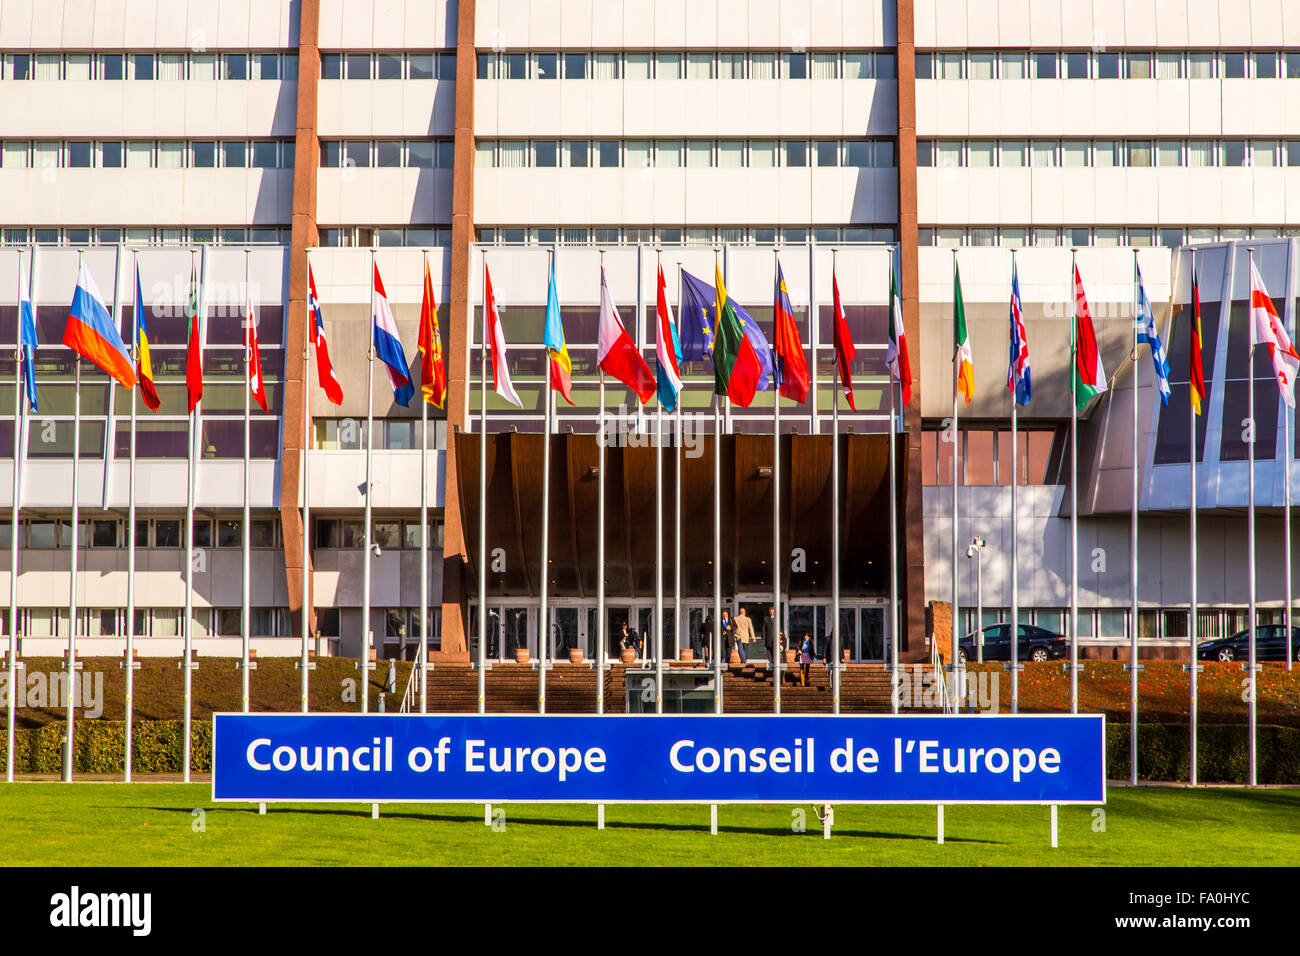 Building of the Council of Europe, Strasbourg, Alsace, France - Stock Image